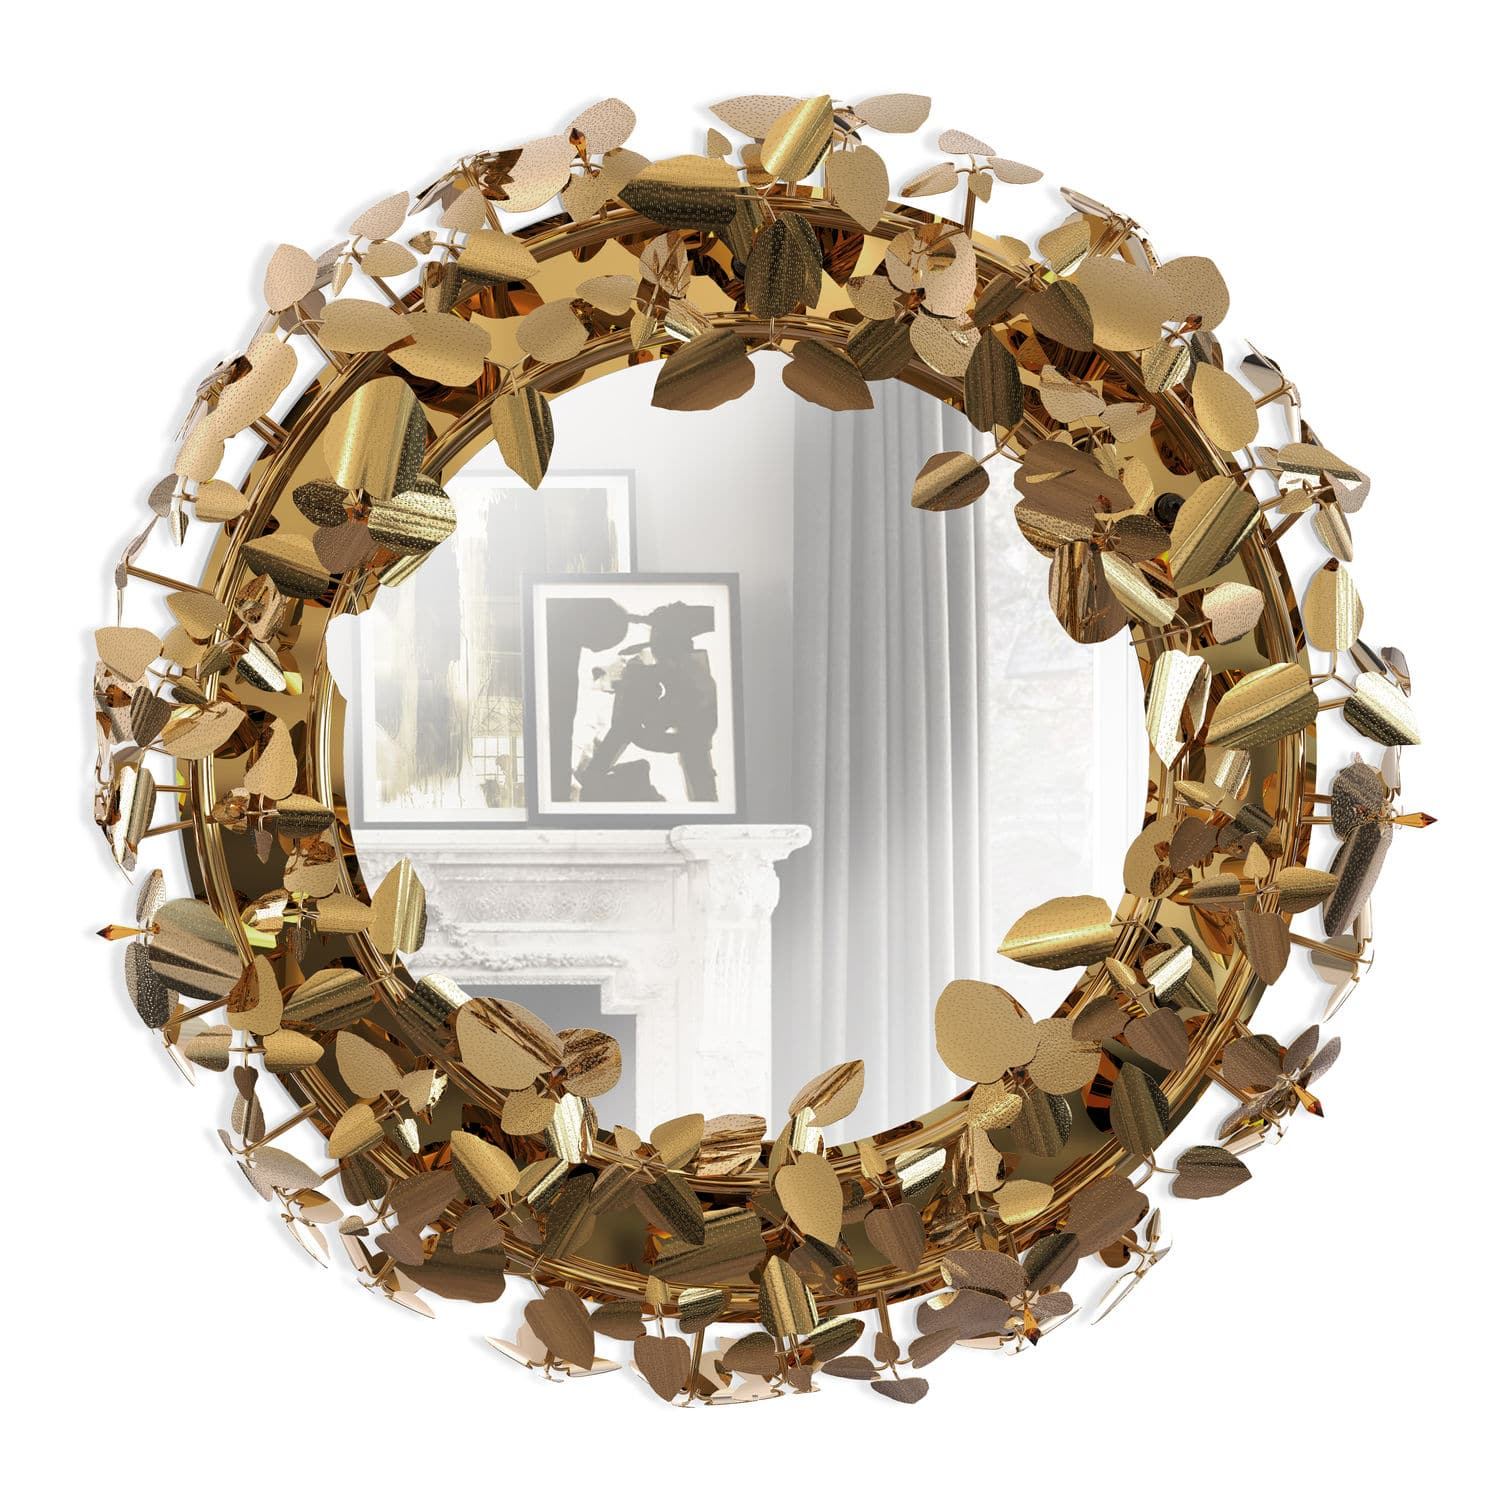 Wall-mounted mirror / living room / contemporary / round - MCQUEEN ...